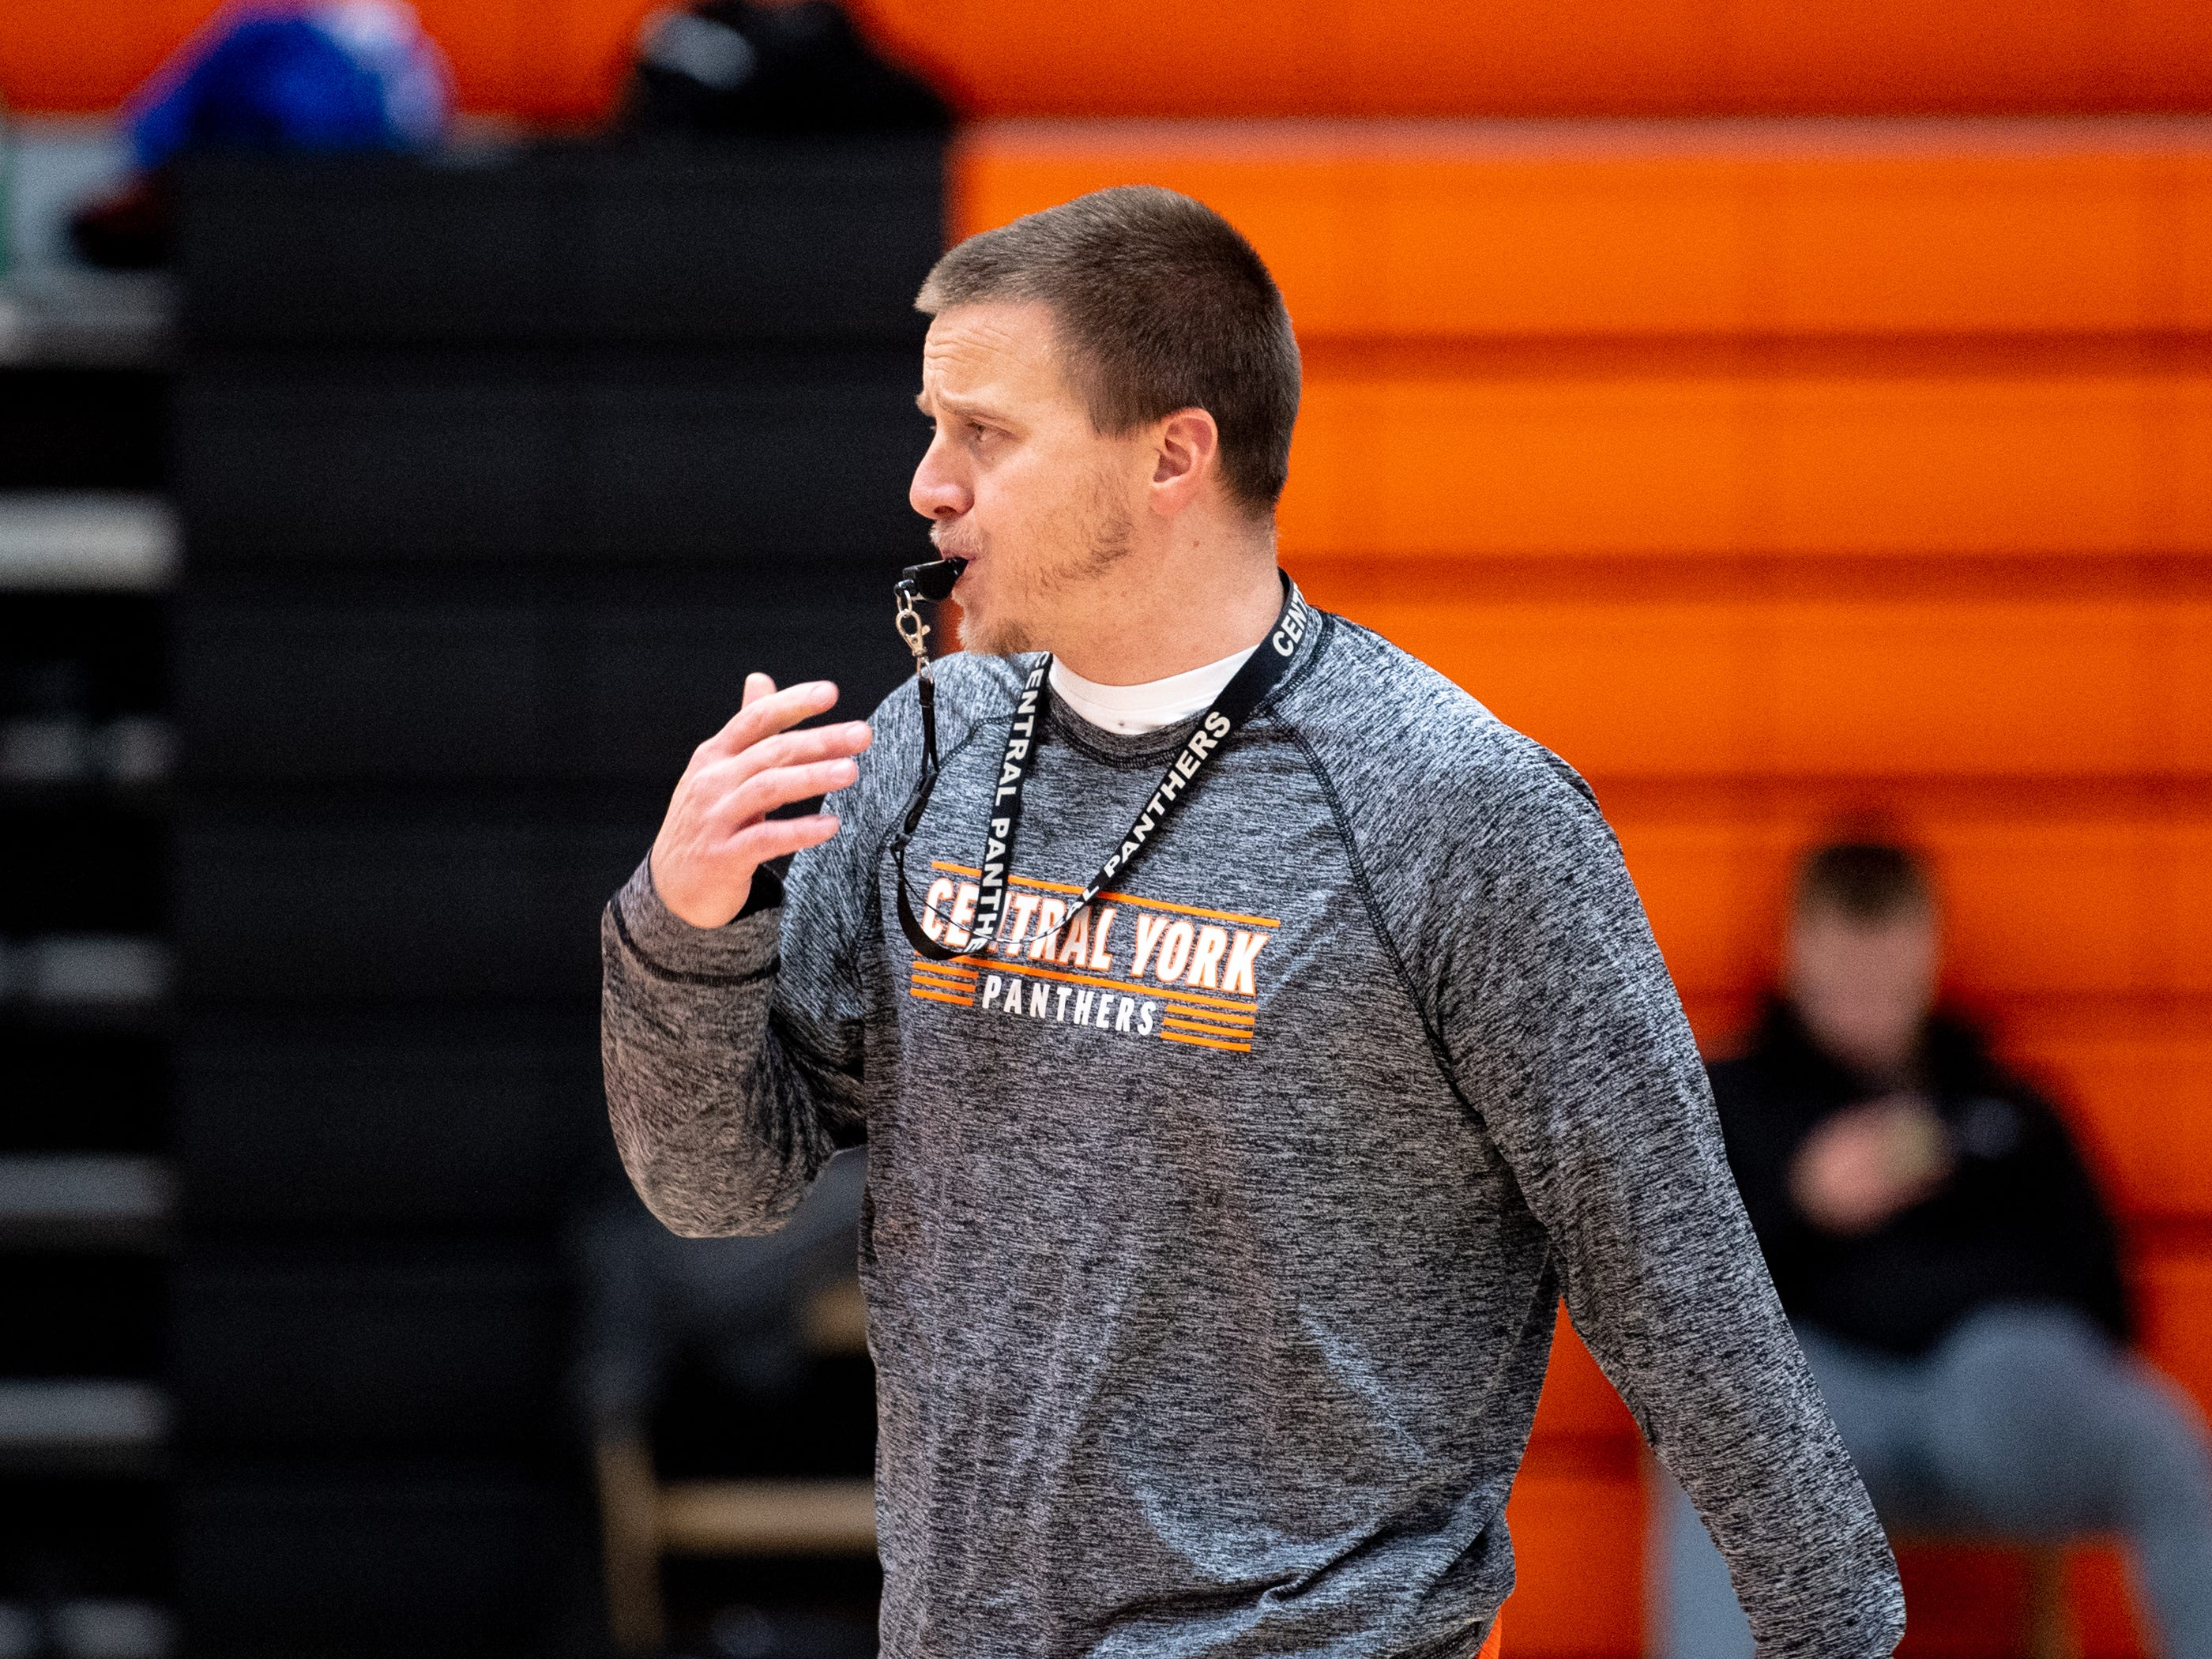 Central York boys' basketball head coach Kevin Schieler blows his whistle, signaling the end of the drill, Wednesday, November 21, 2018.